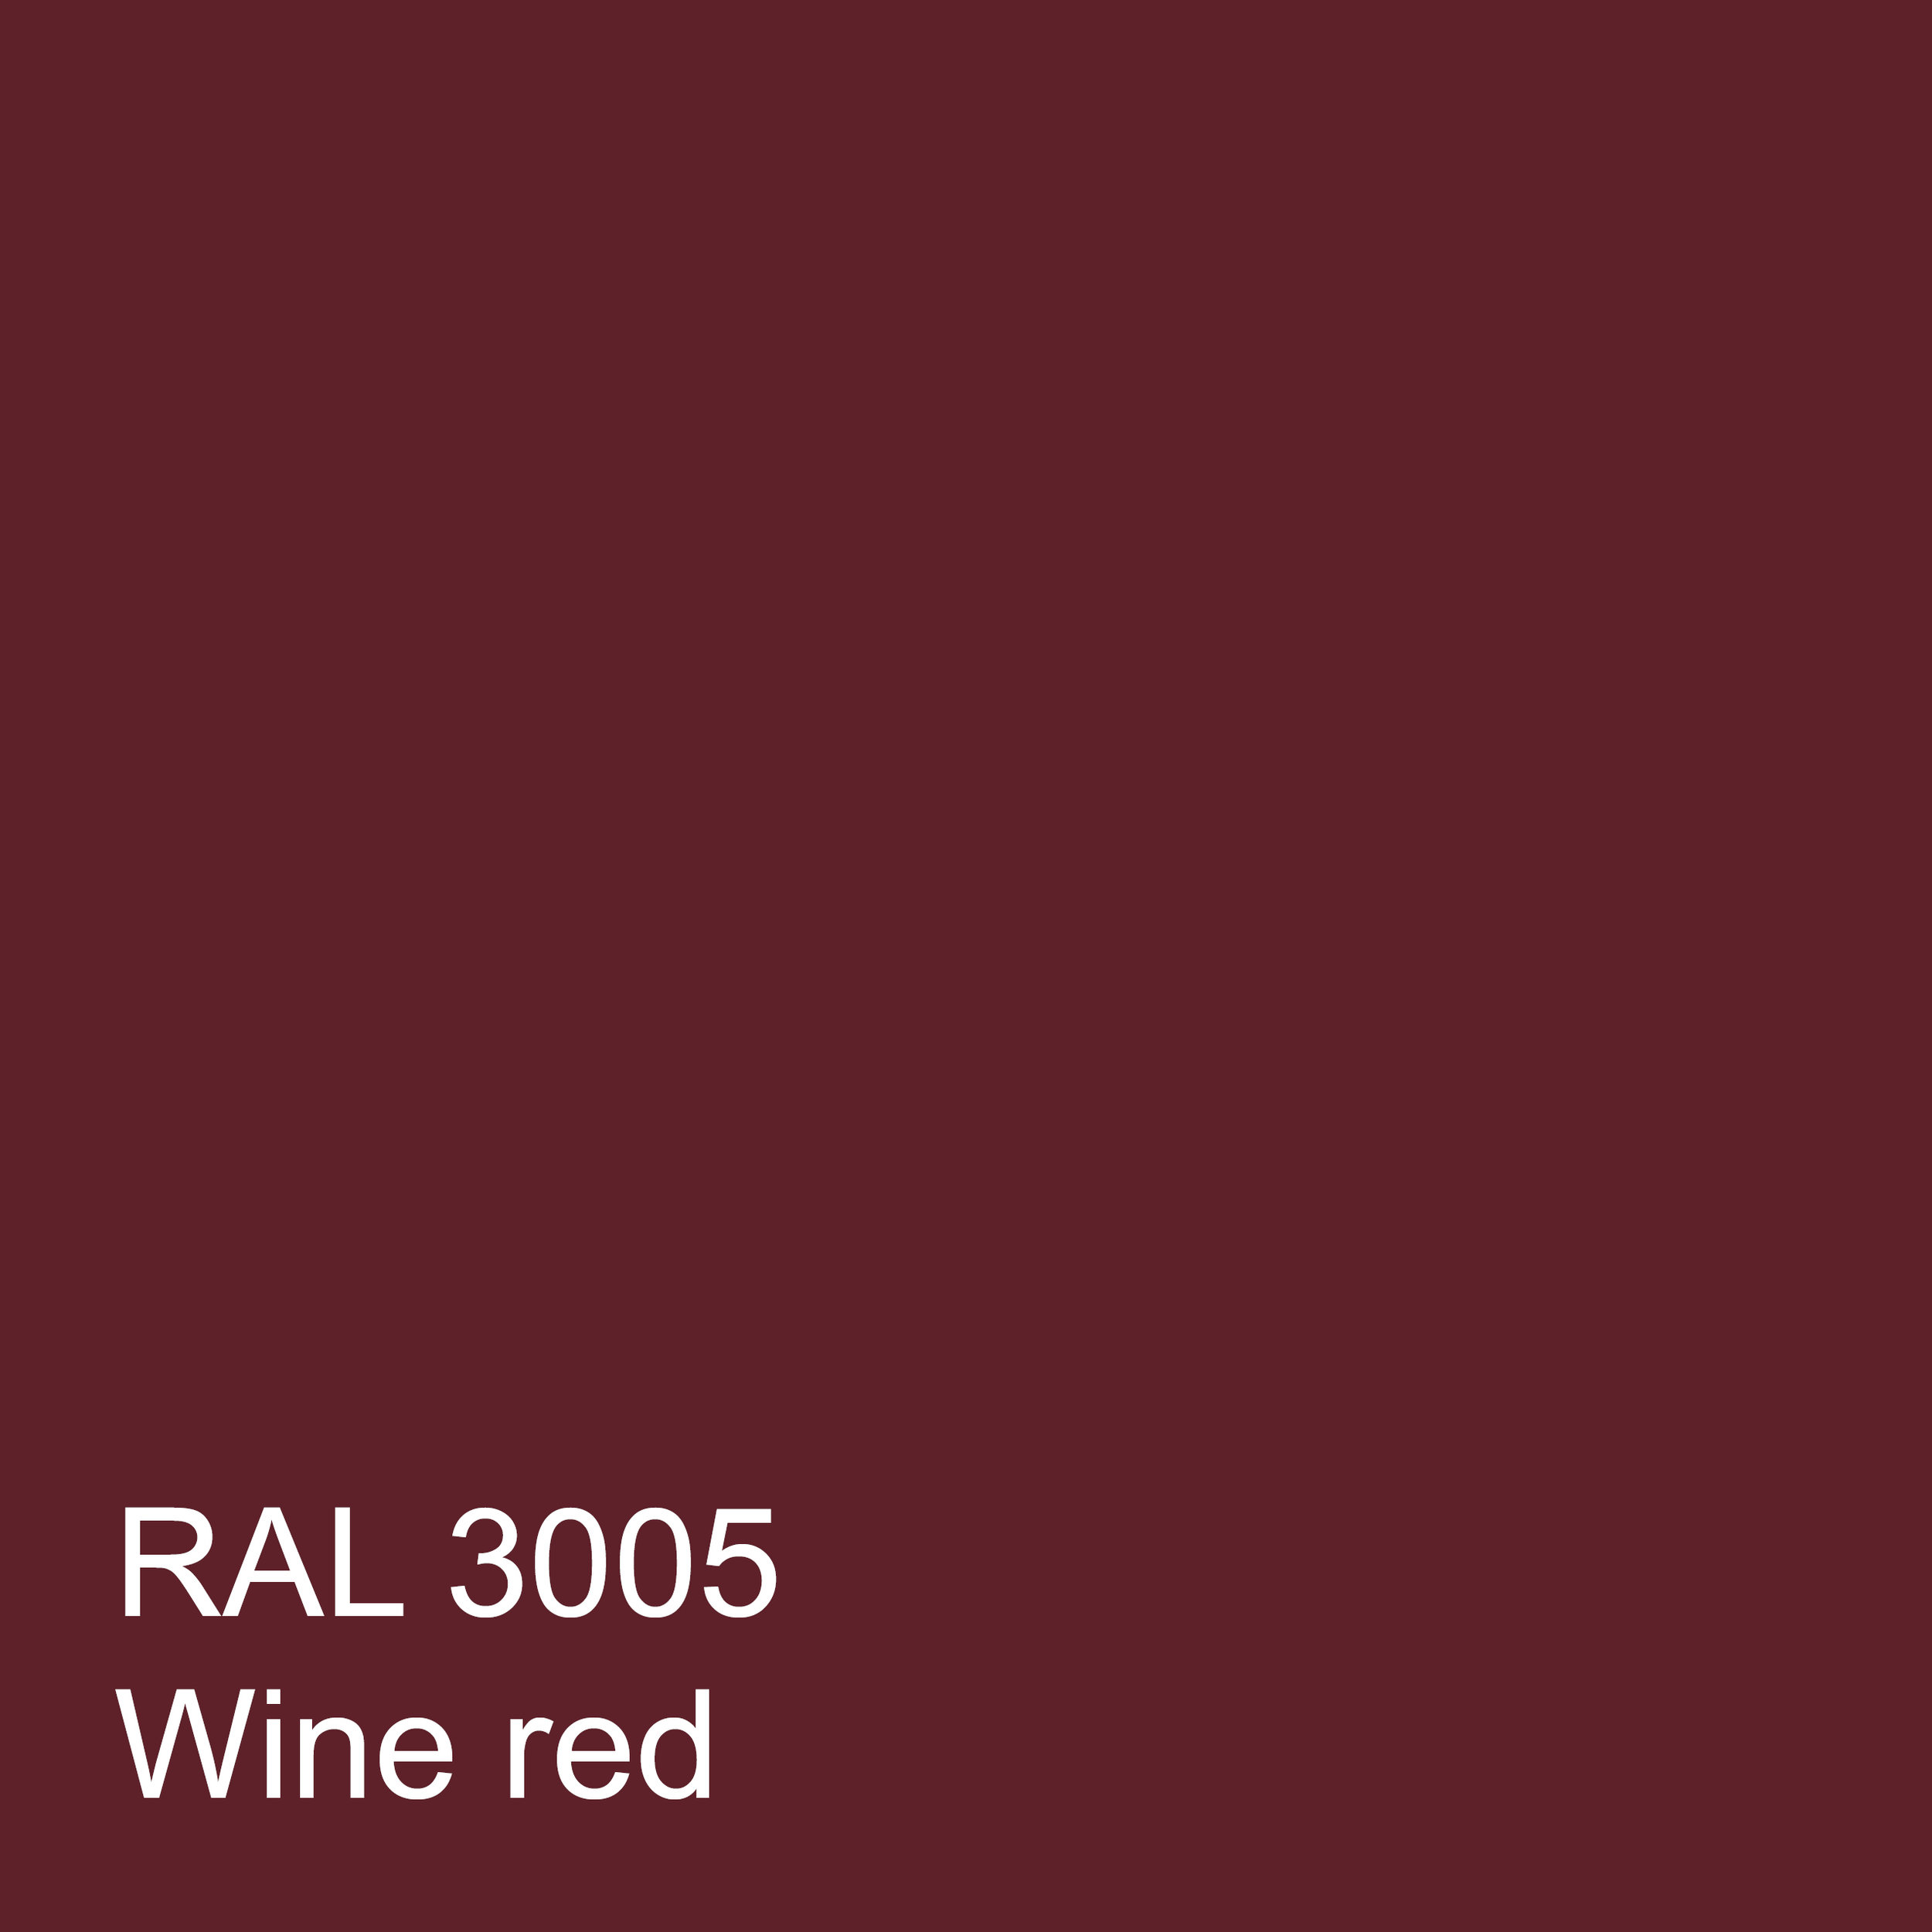 RAL 3005 WINE RED.jpg